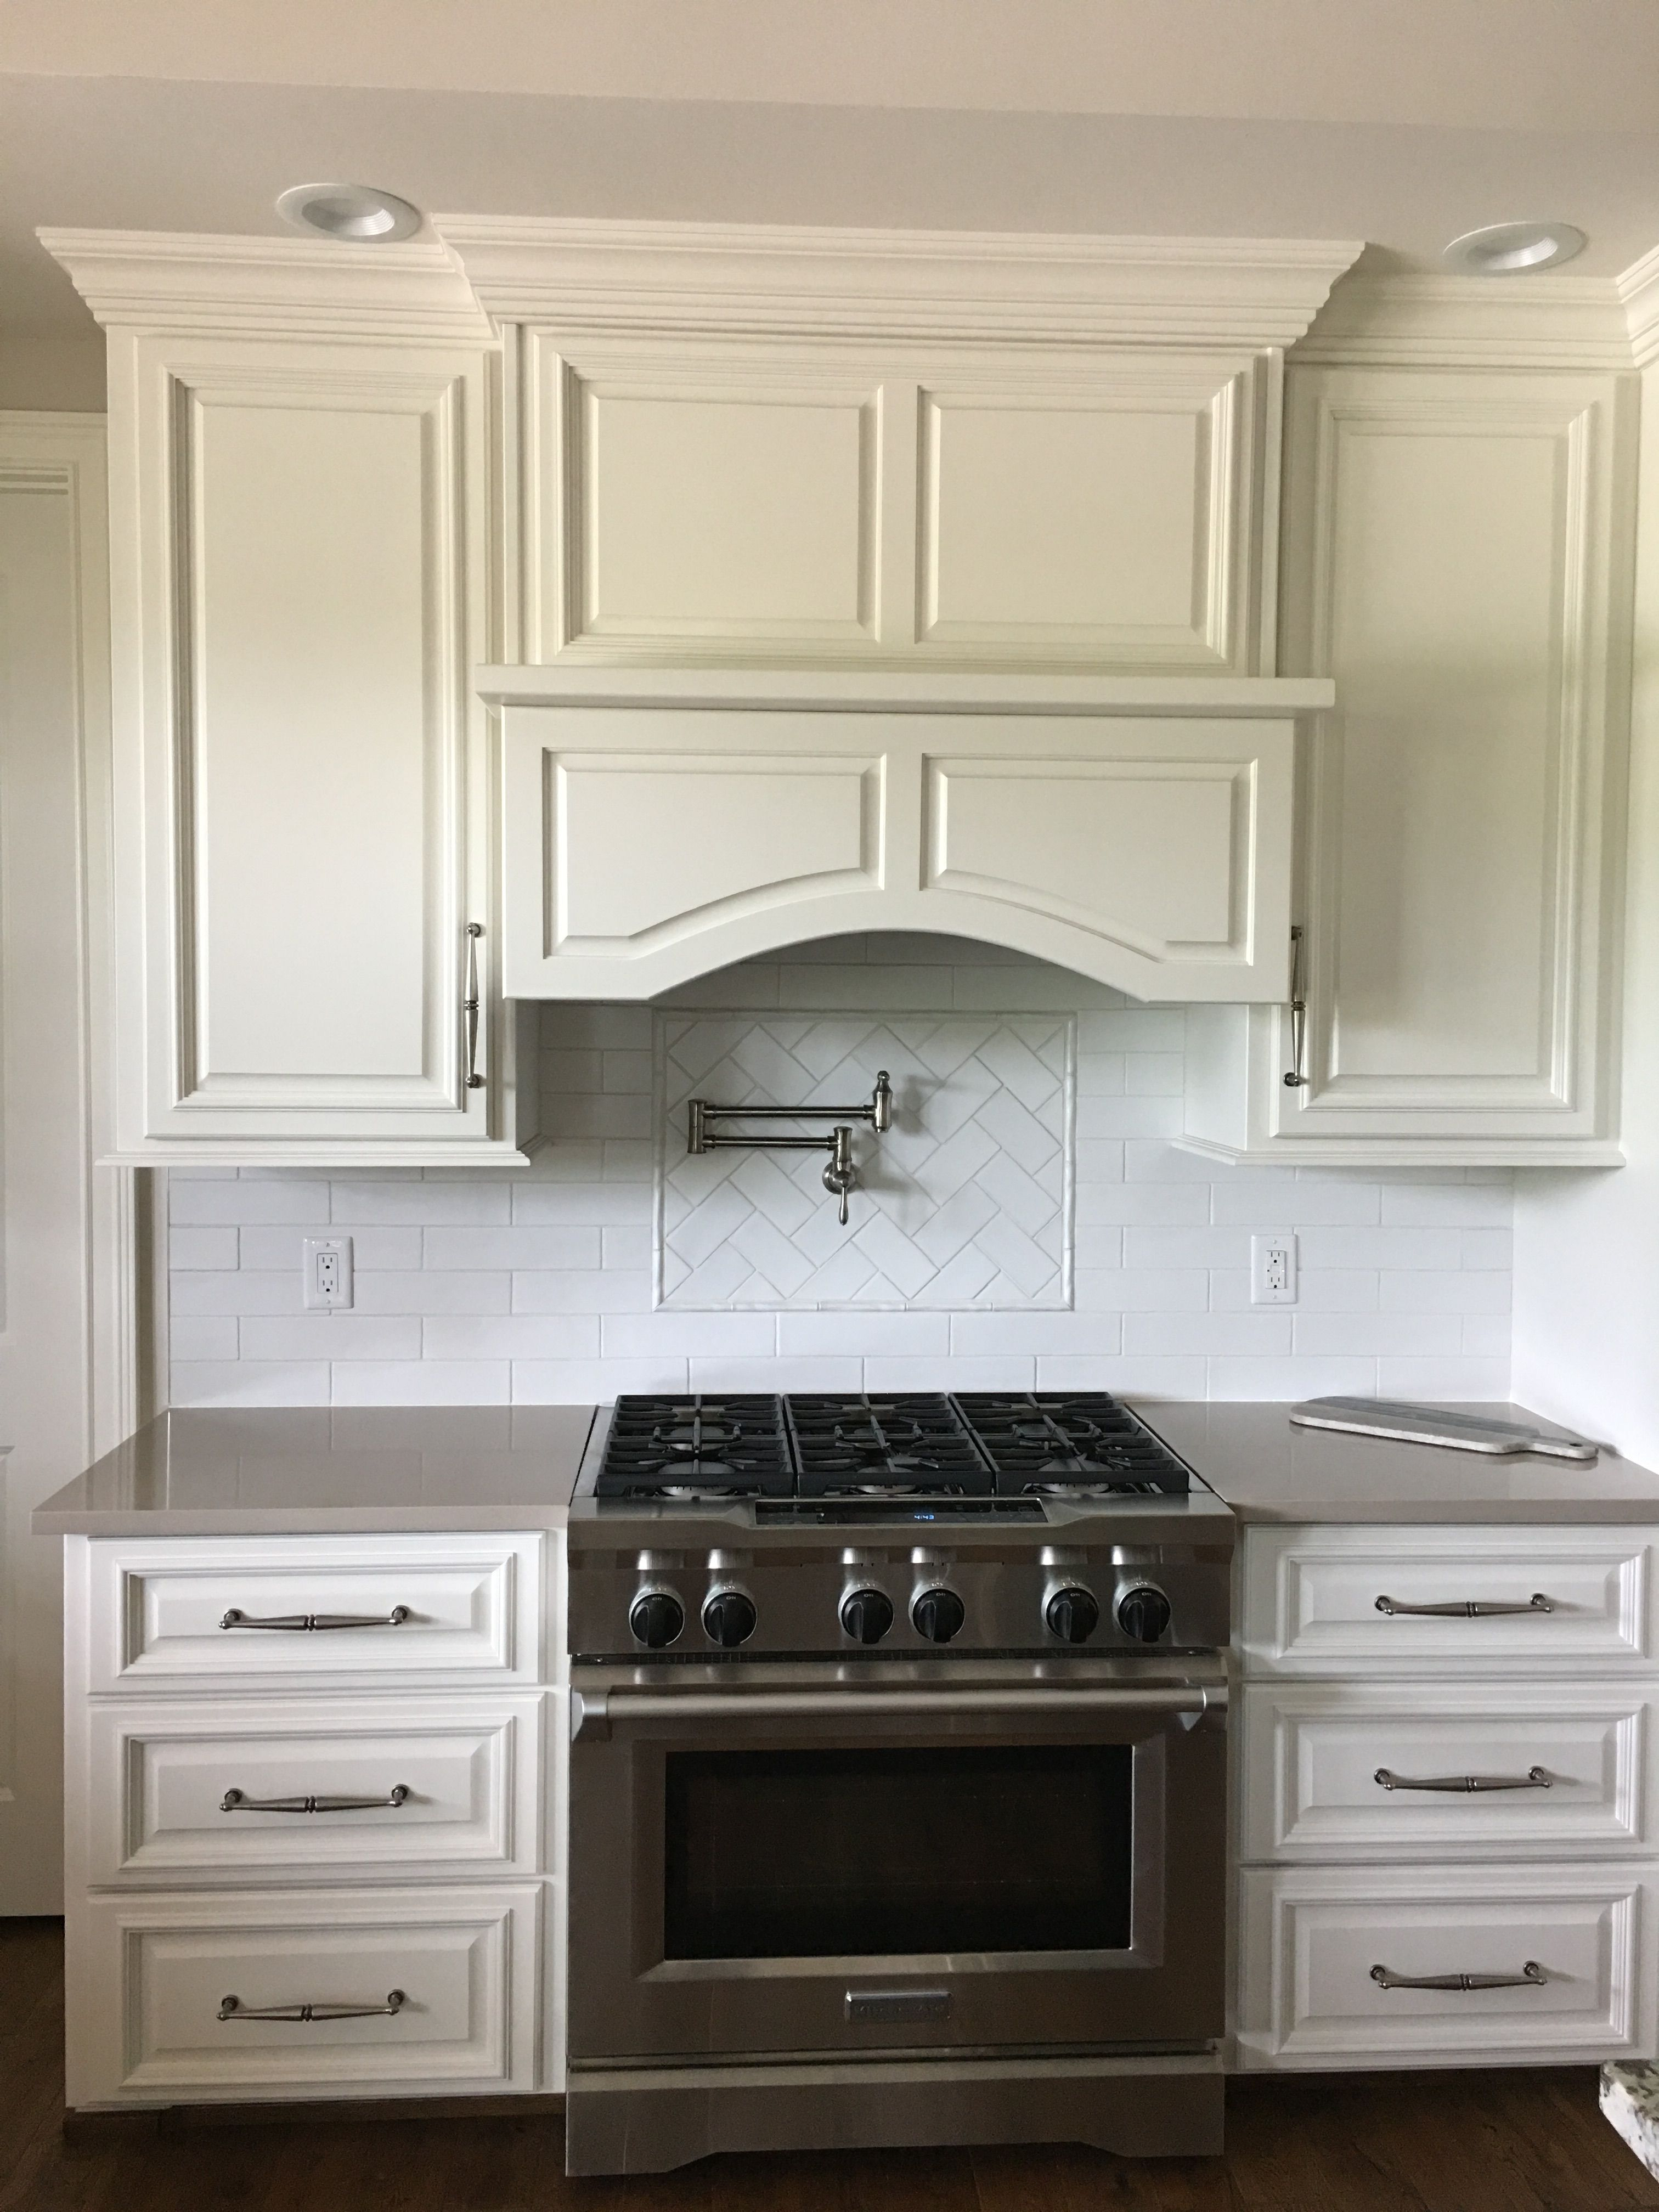 Cabinets In Sw Alabaster Wall And Ceiling In Sw Accessible Beige